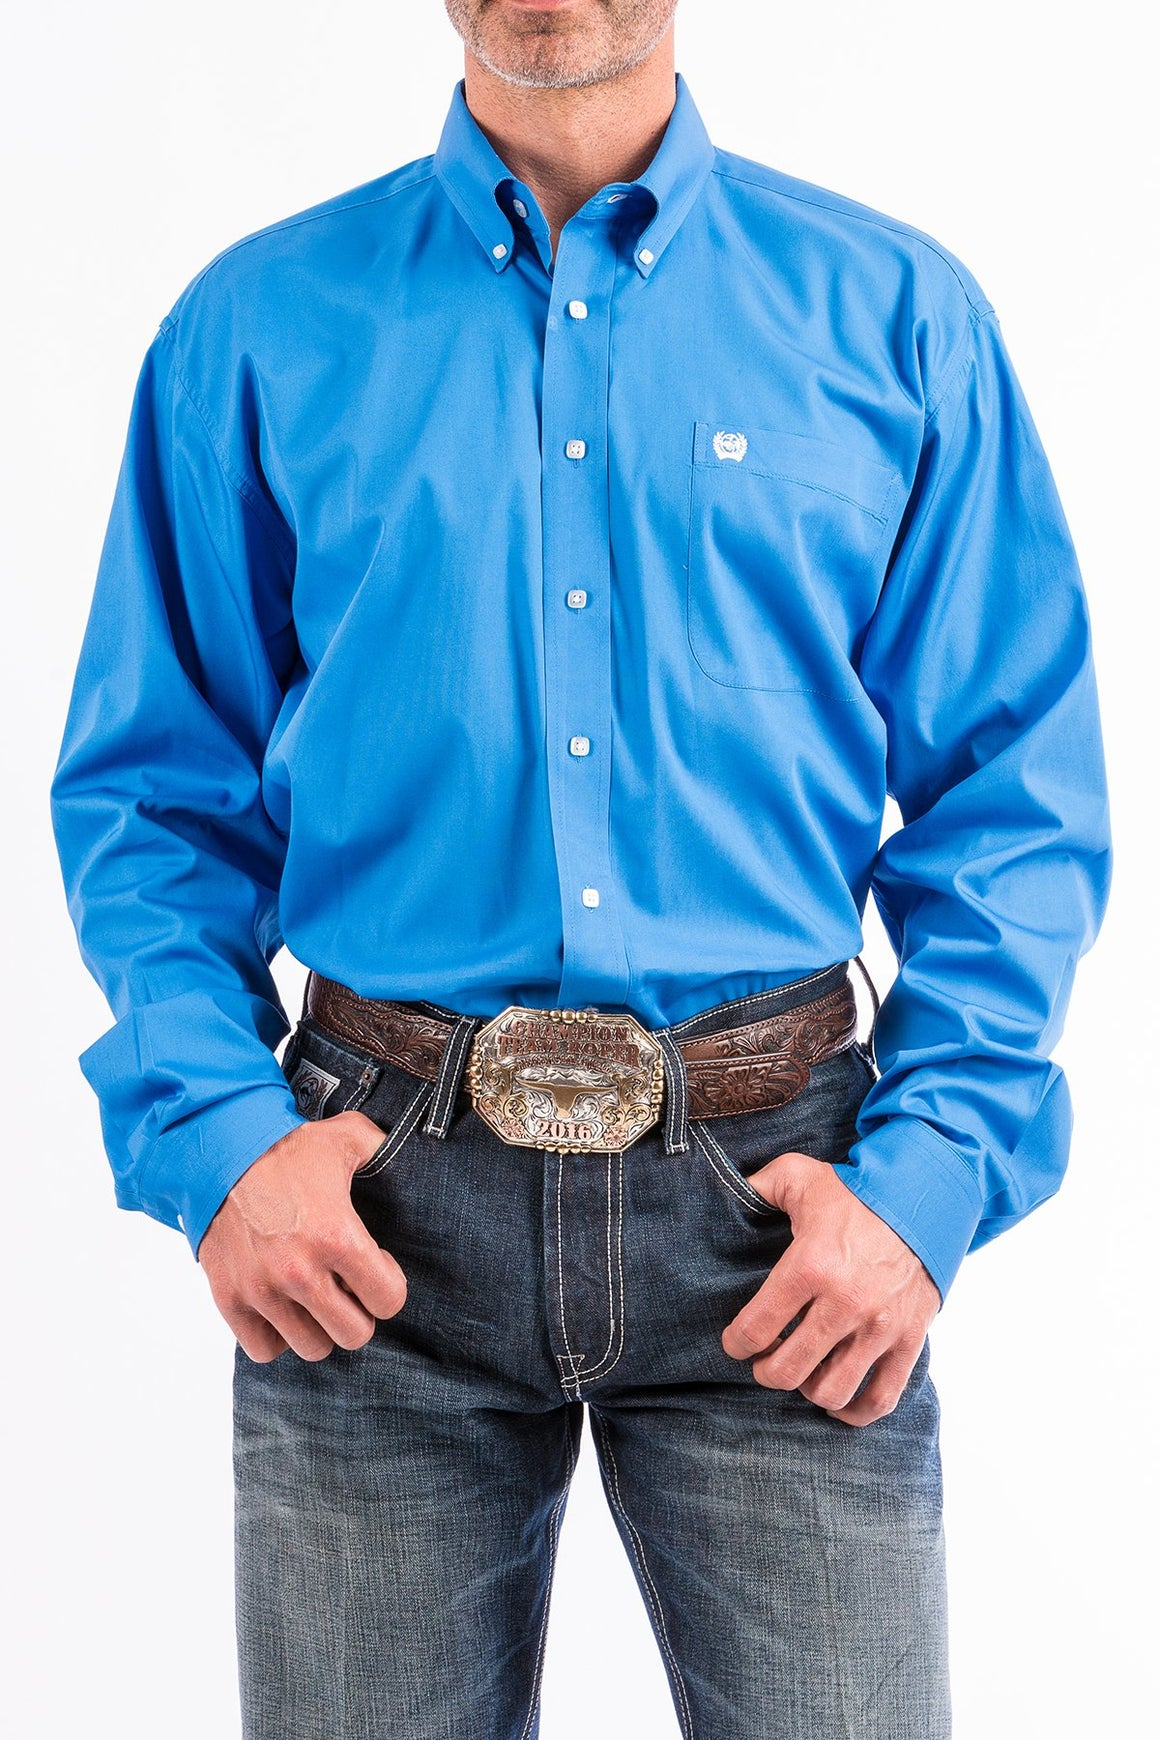 Cinch Solid Blue Western Button Down Shirt